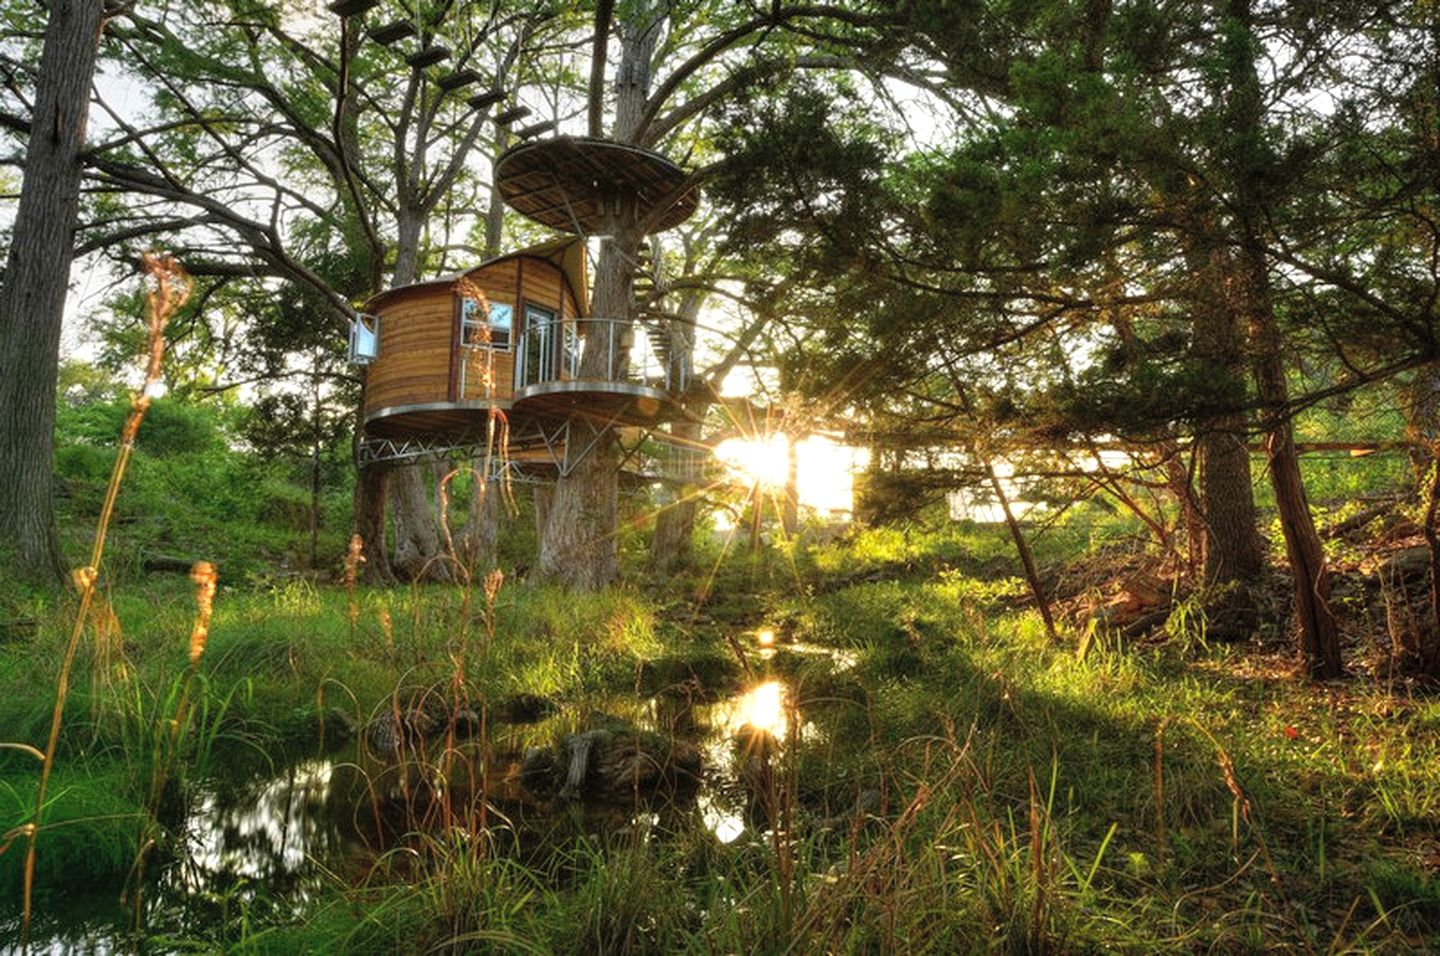 Tree house rental in the woods next to a creek at sunset in Austin, Texas.